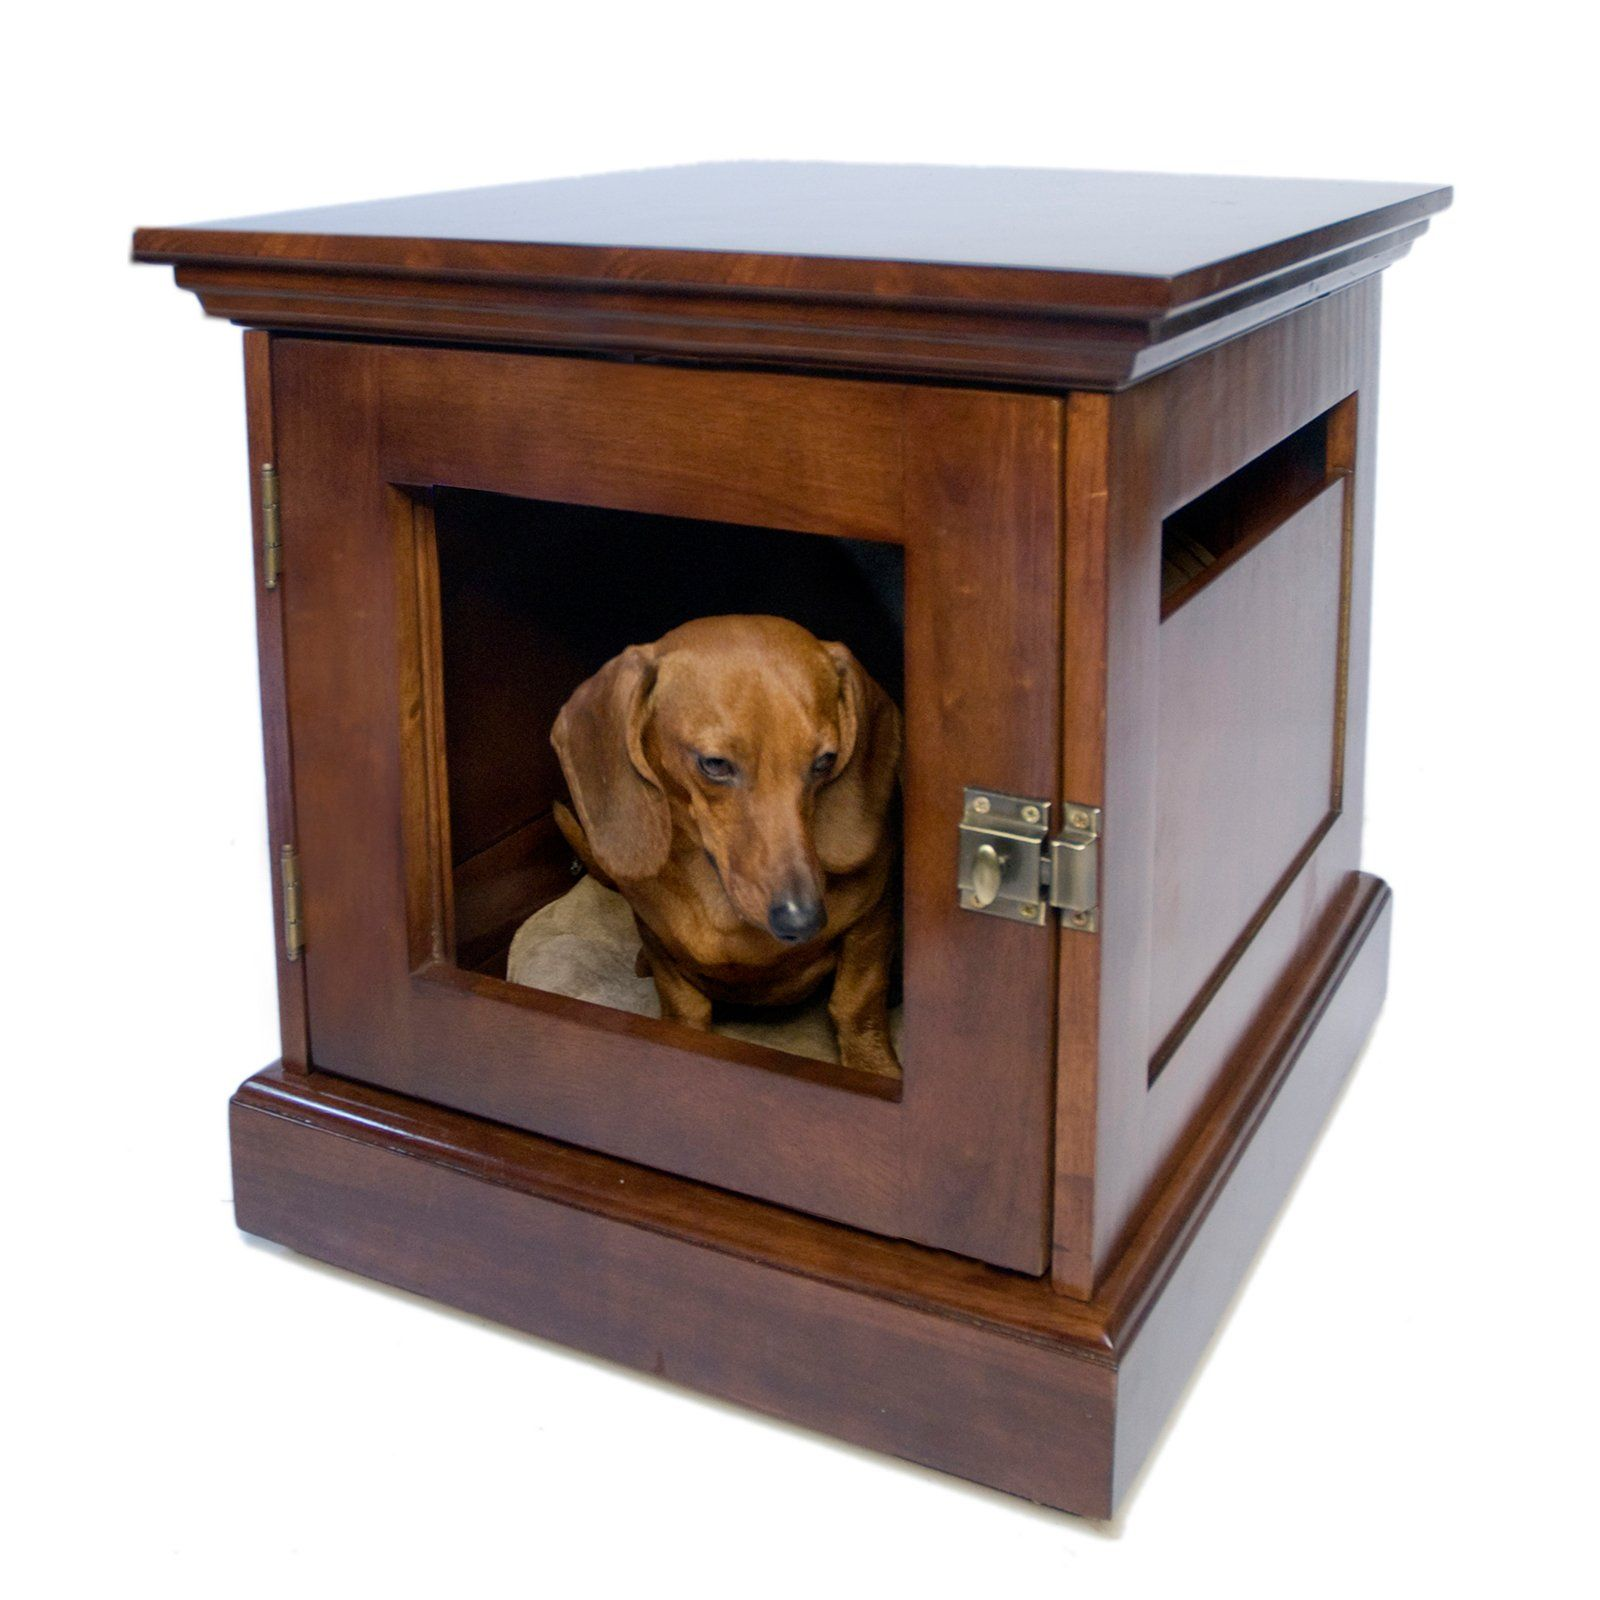 furniture denhaus wood dog crates. denhaus townhaus wood dog crate furniture 44999 hayneedle denhaus crates e